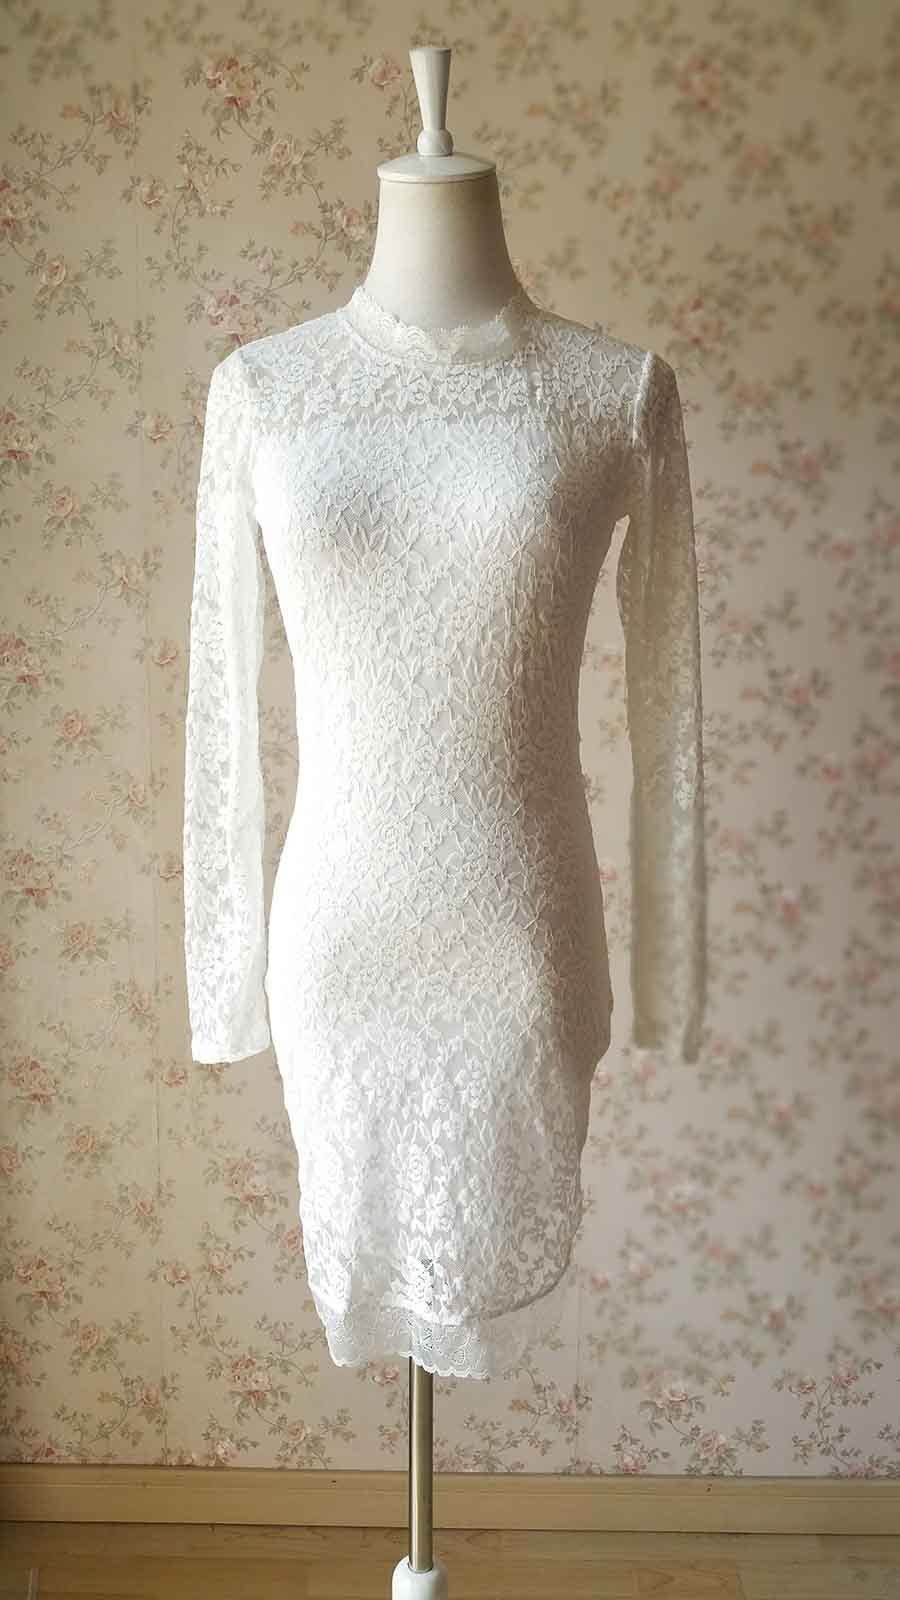 Ivory White Long Sleeve Round Neck Full Lace Short Dress Alternative Wedding NWT